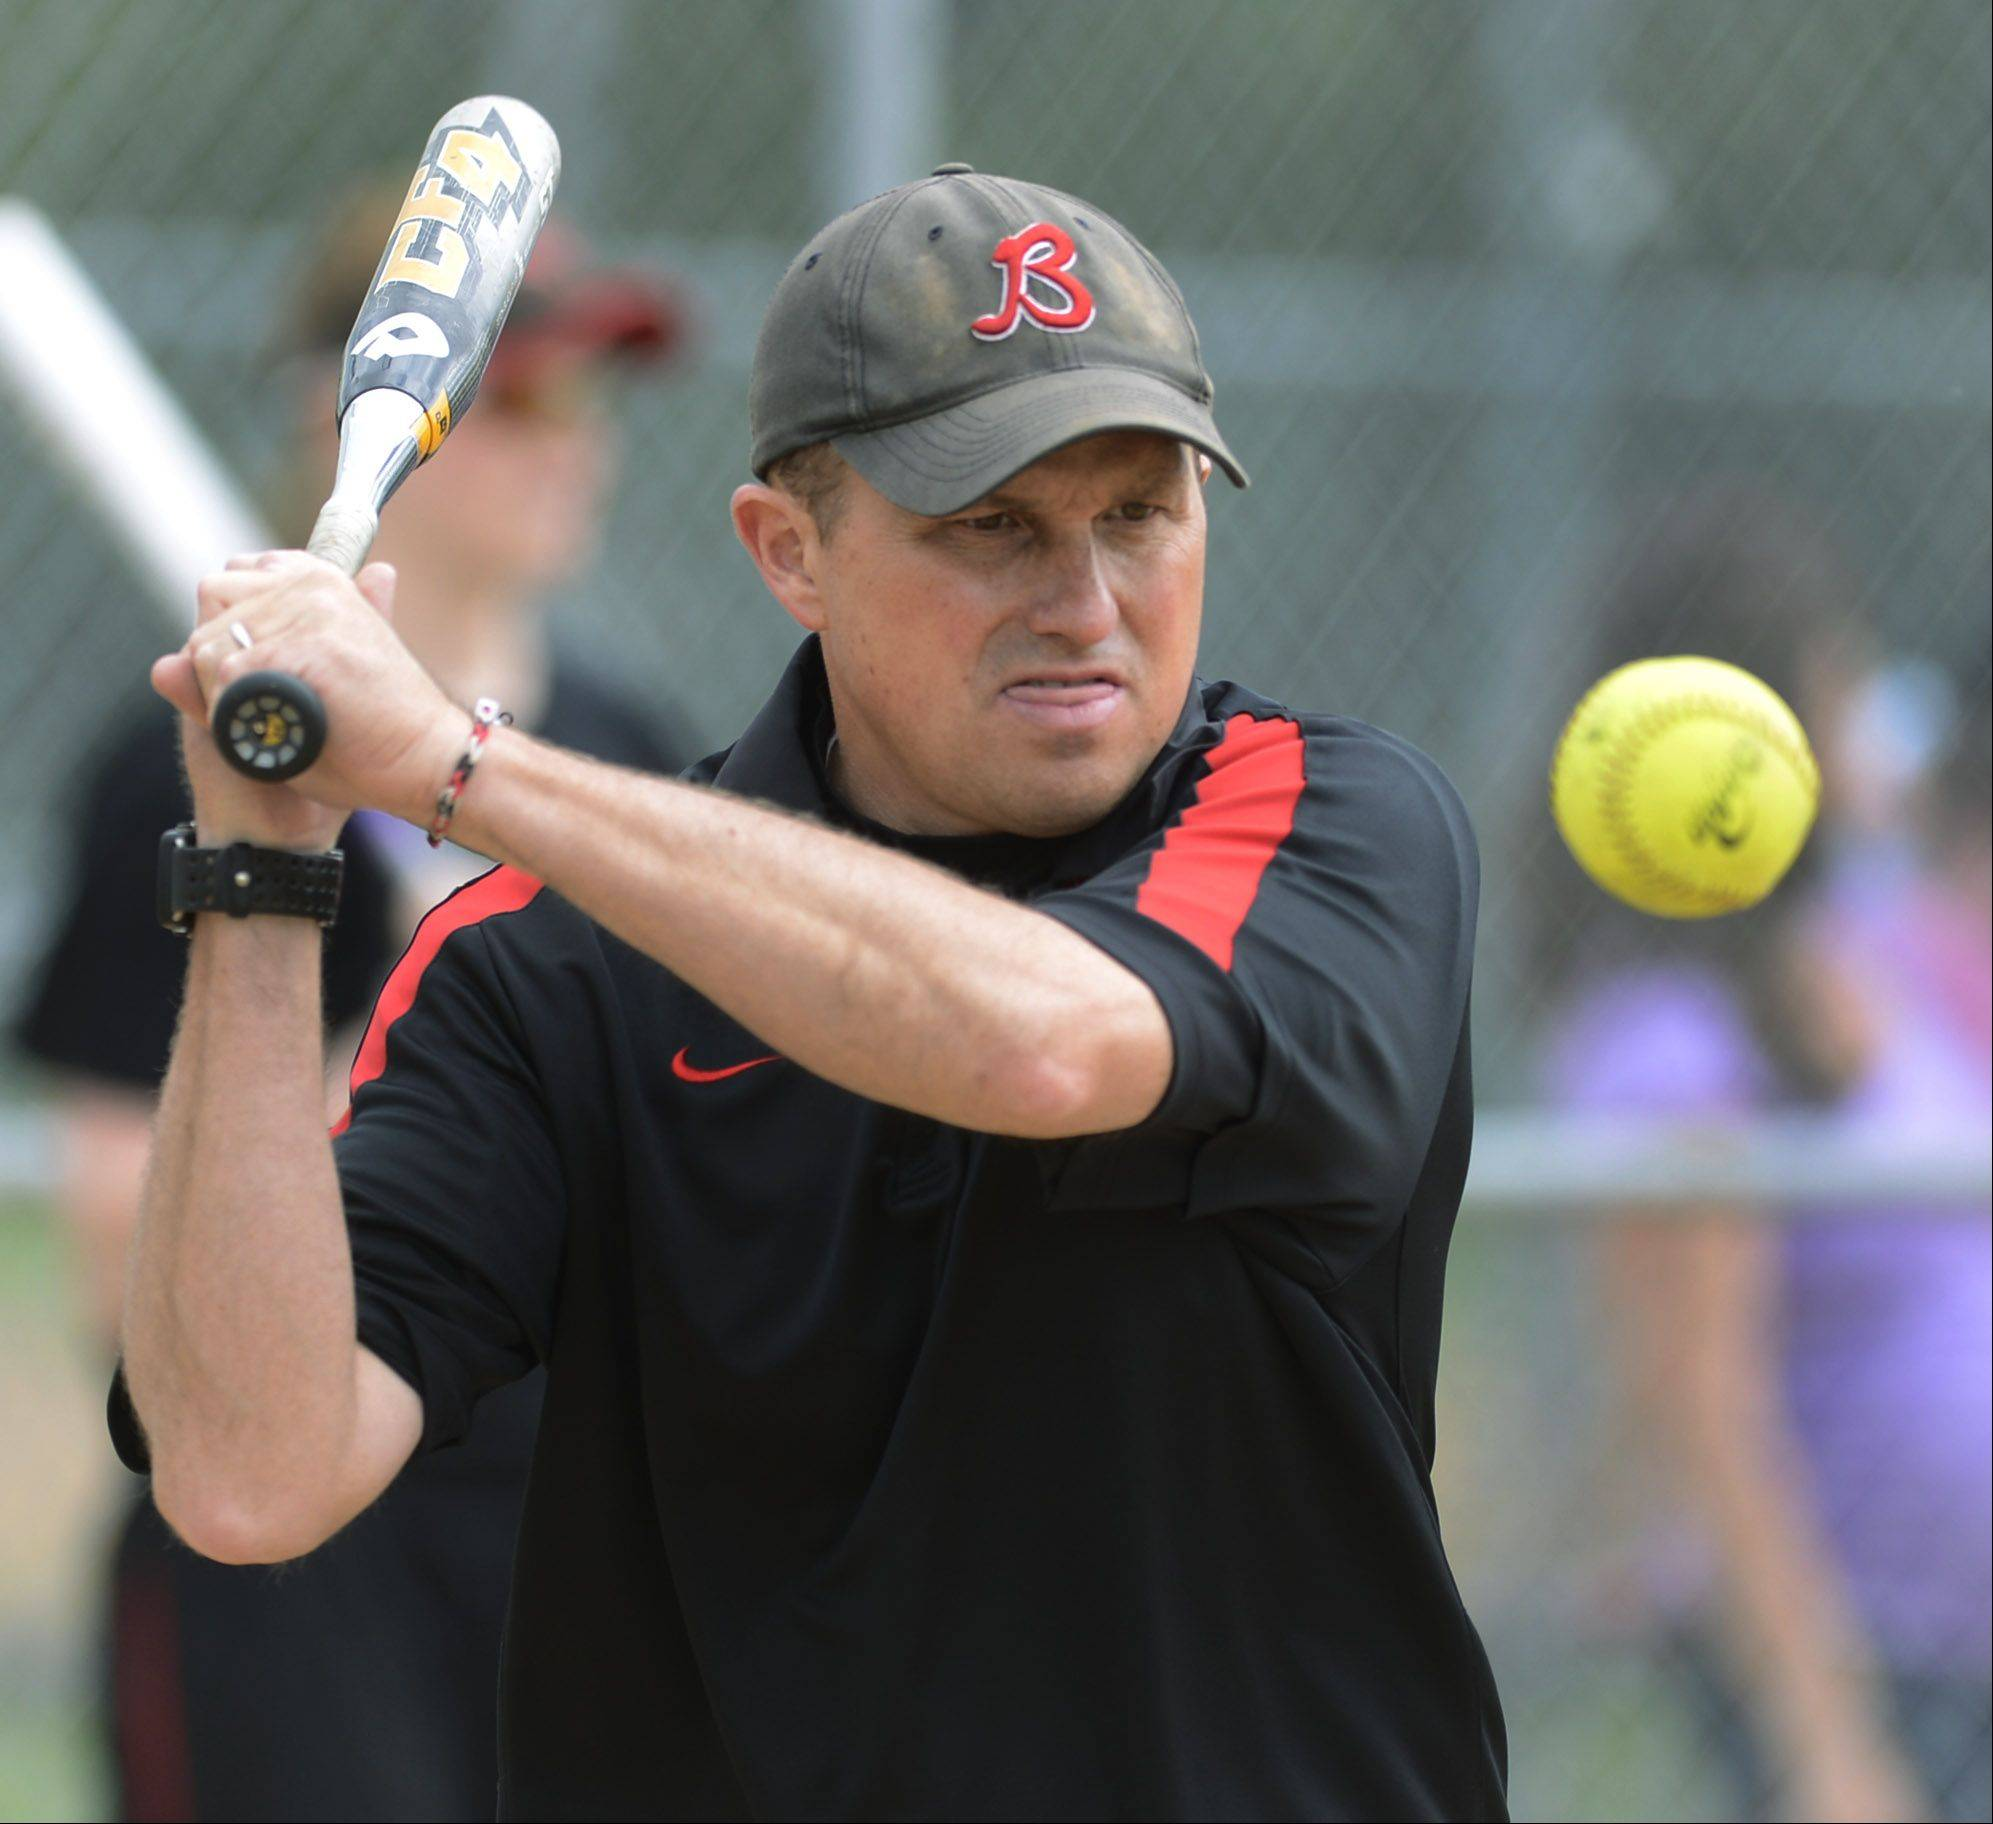 Barrington softball coach Perry Peterson hits groundballs during infield warmups.